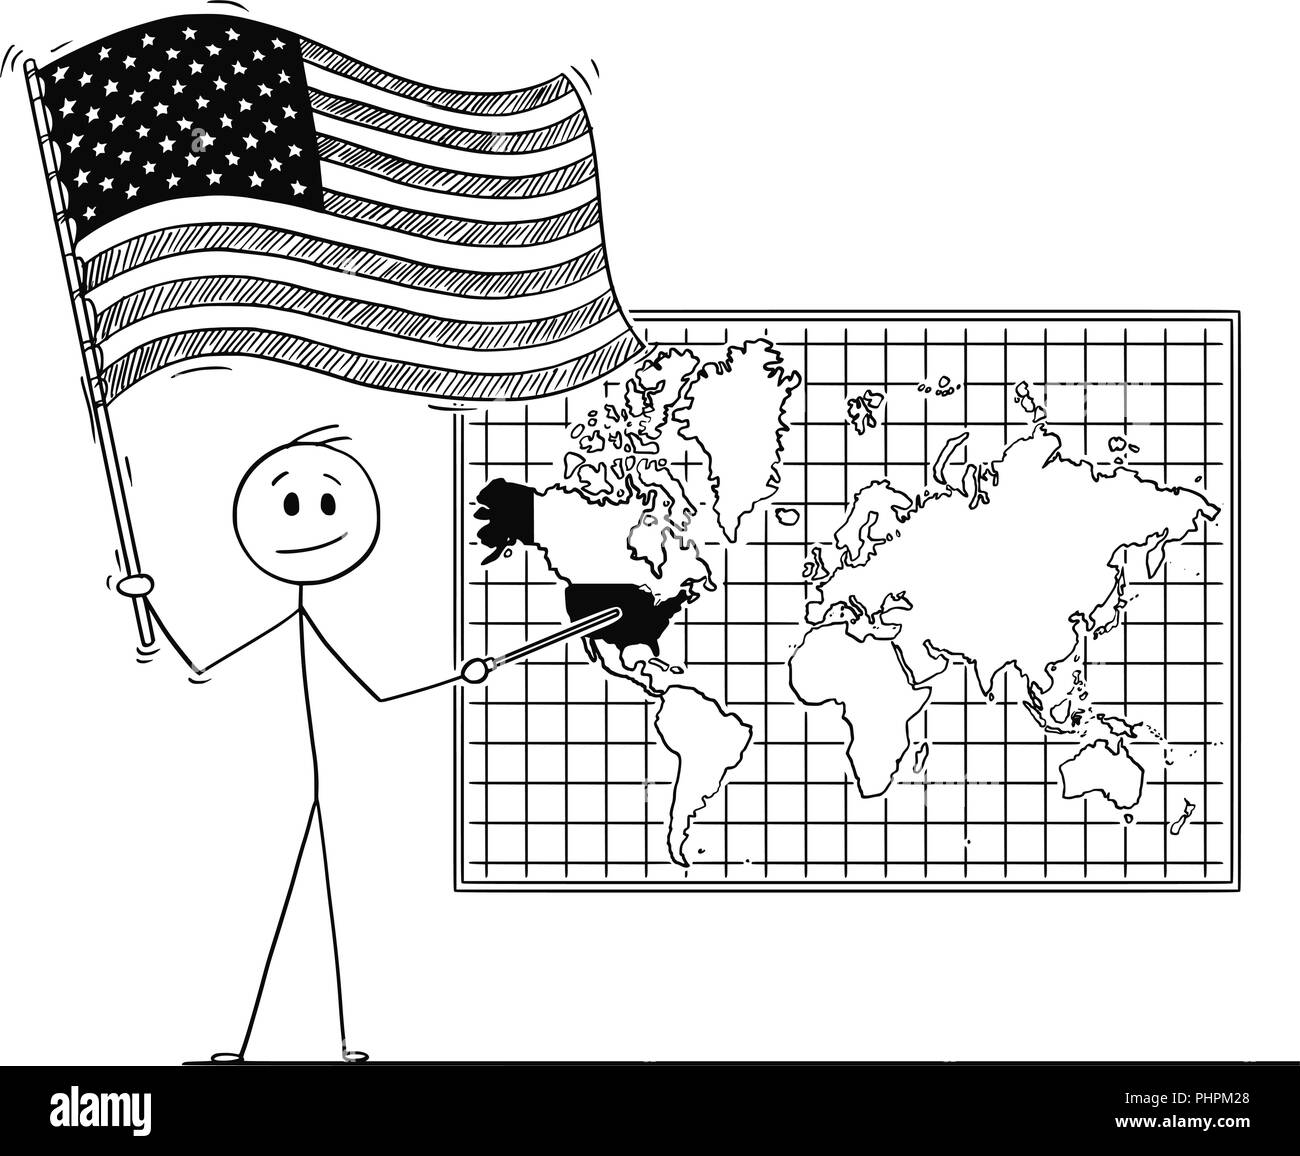 Cartoon Of Man Holding Us Flag And Pointing At United States Of